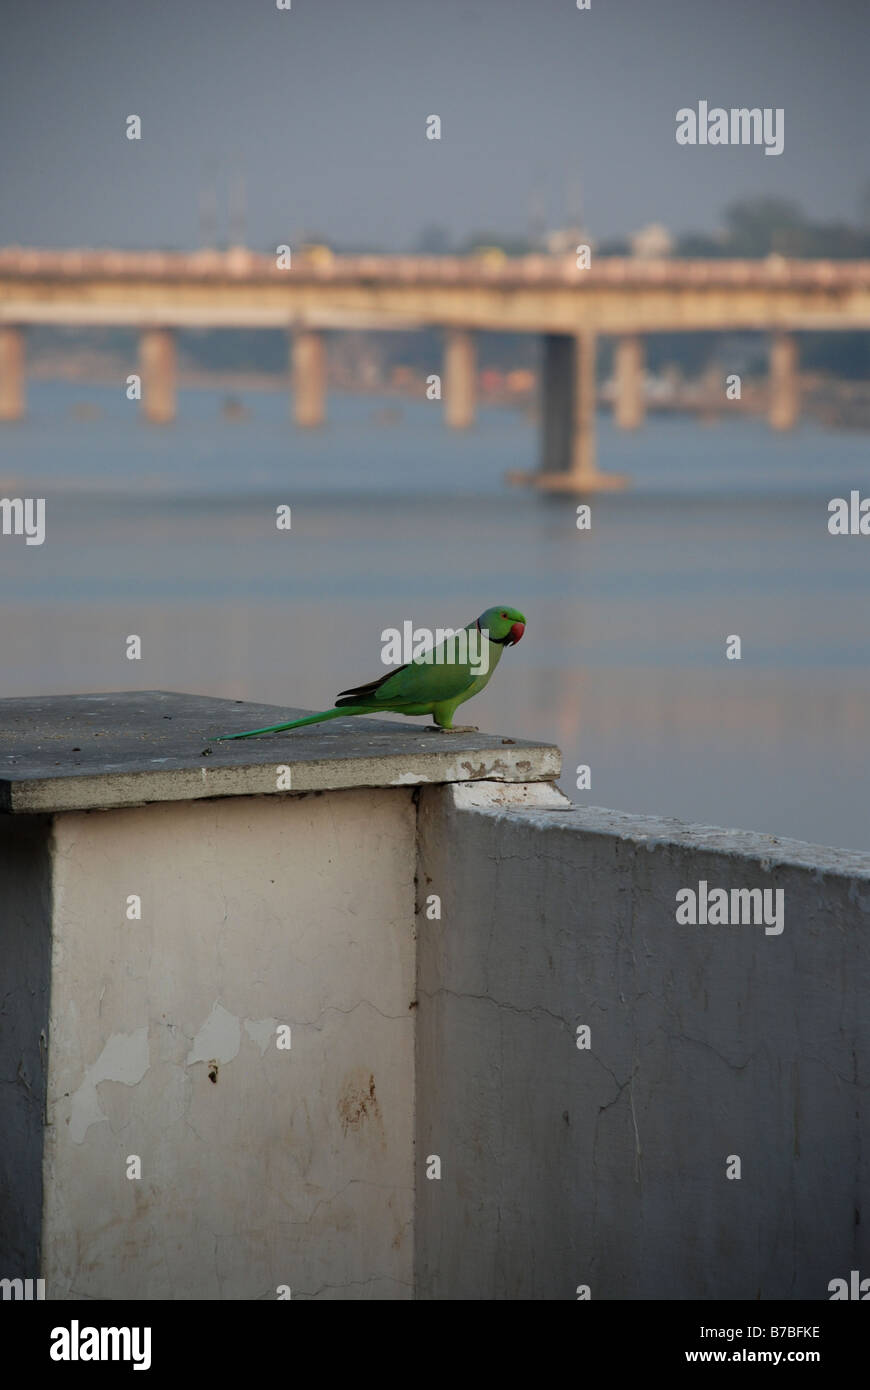 Perroquet with the Gandhi Bridge in the distance, Ahmedabad, India. - Stock Image